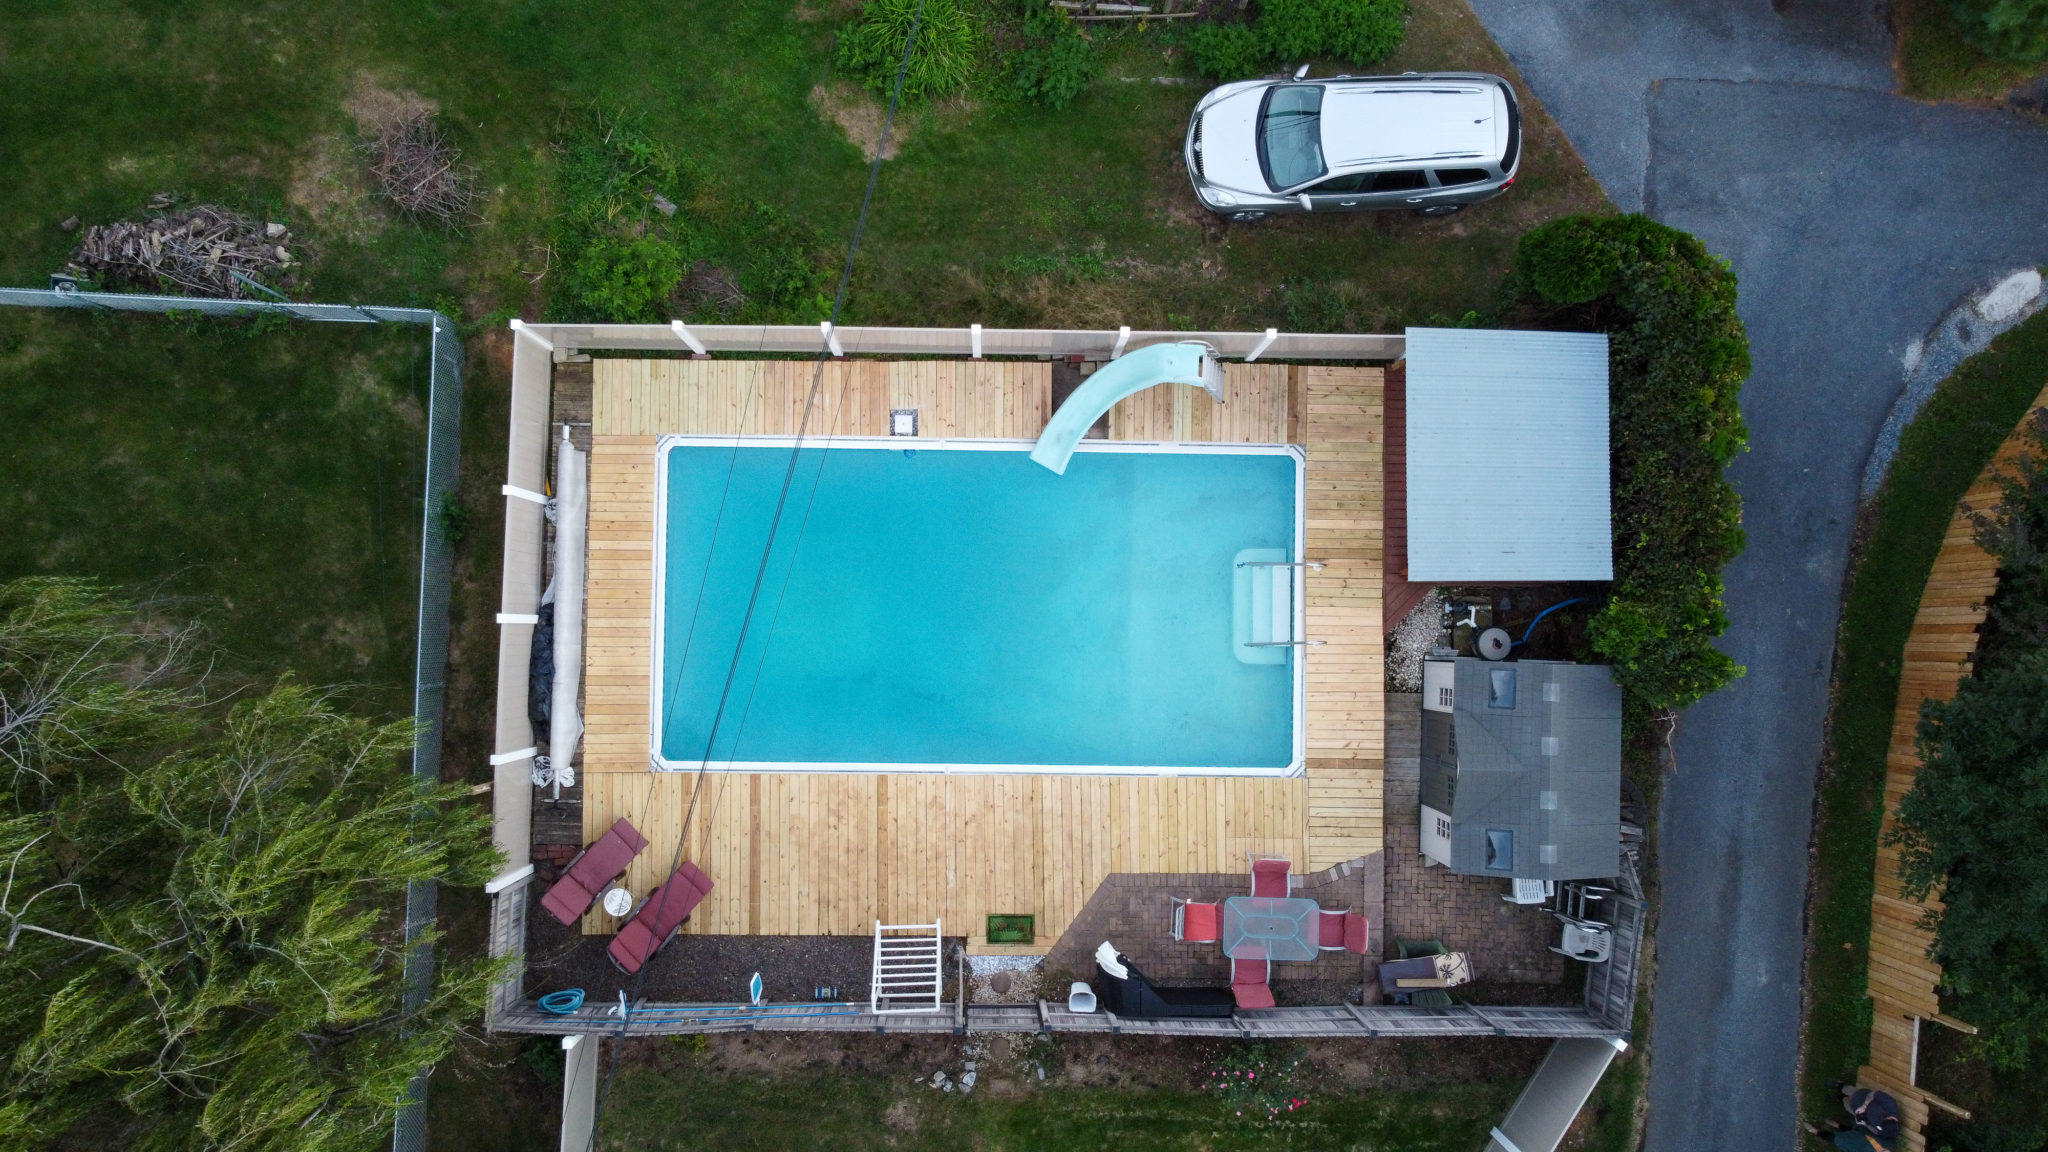 2022 Kline St. - Overhead of pool